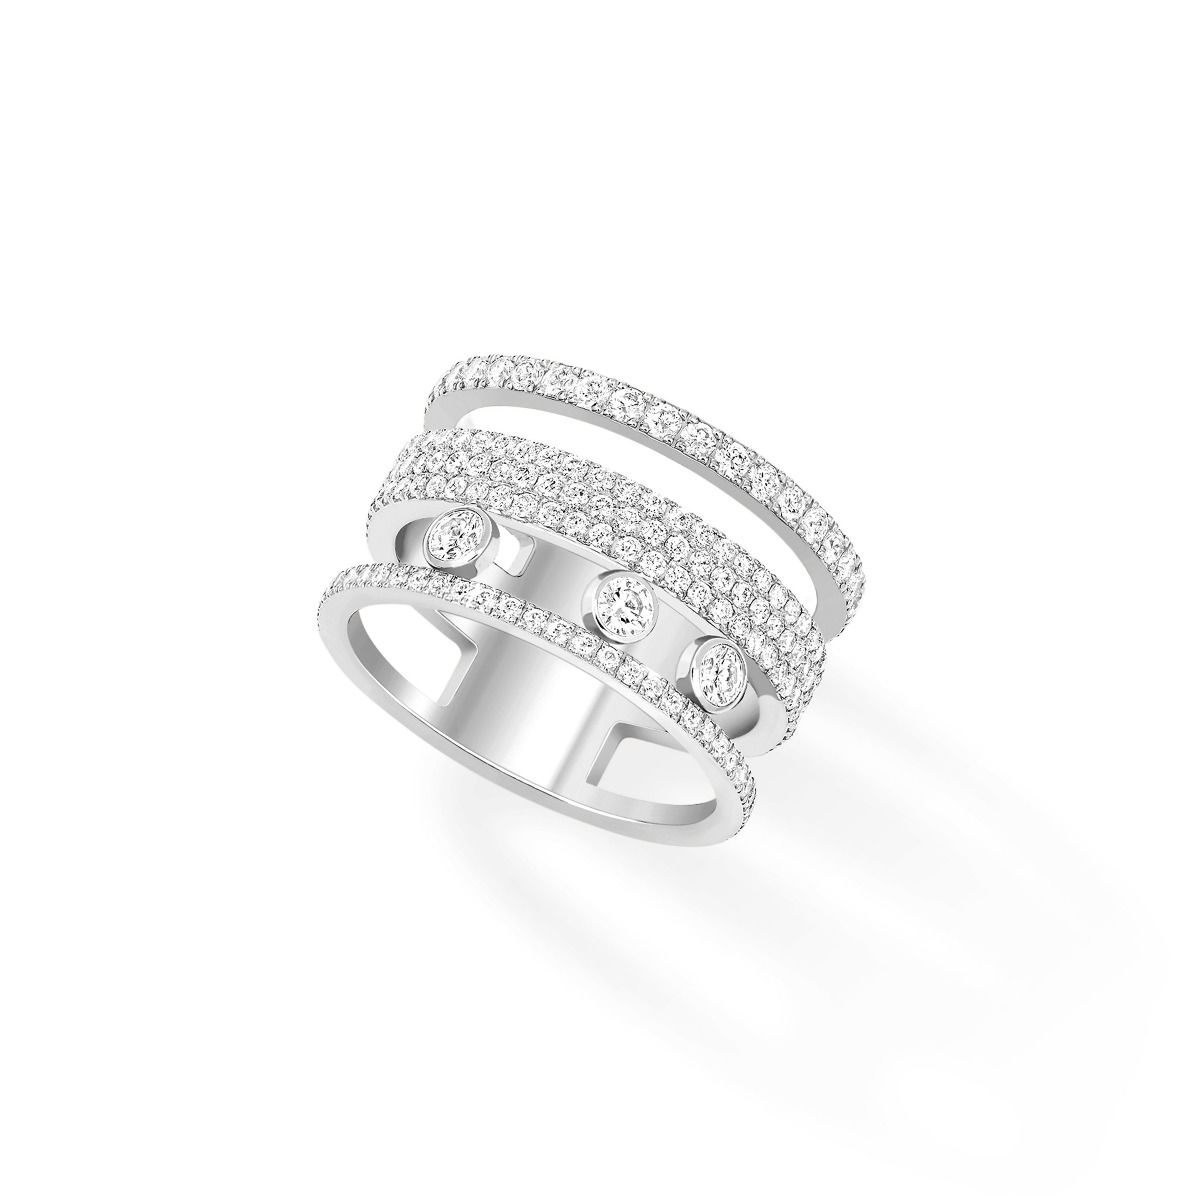 Move Romane Gm Pavé Ring - White Gold